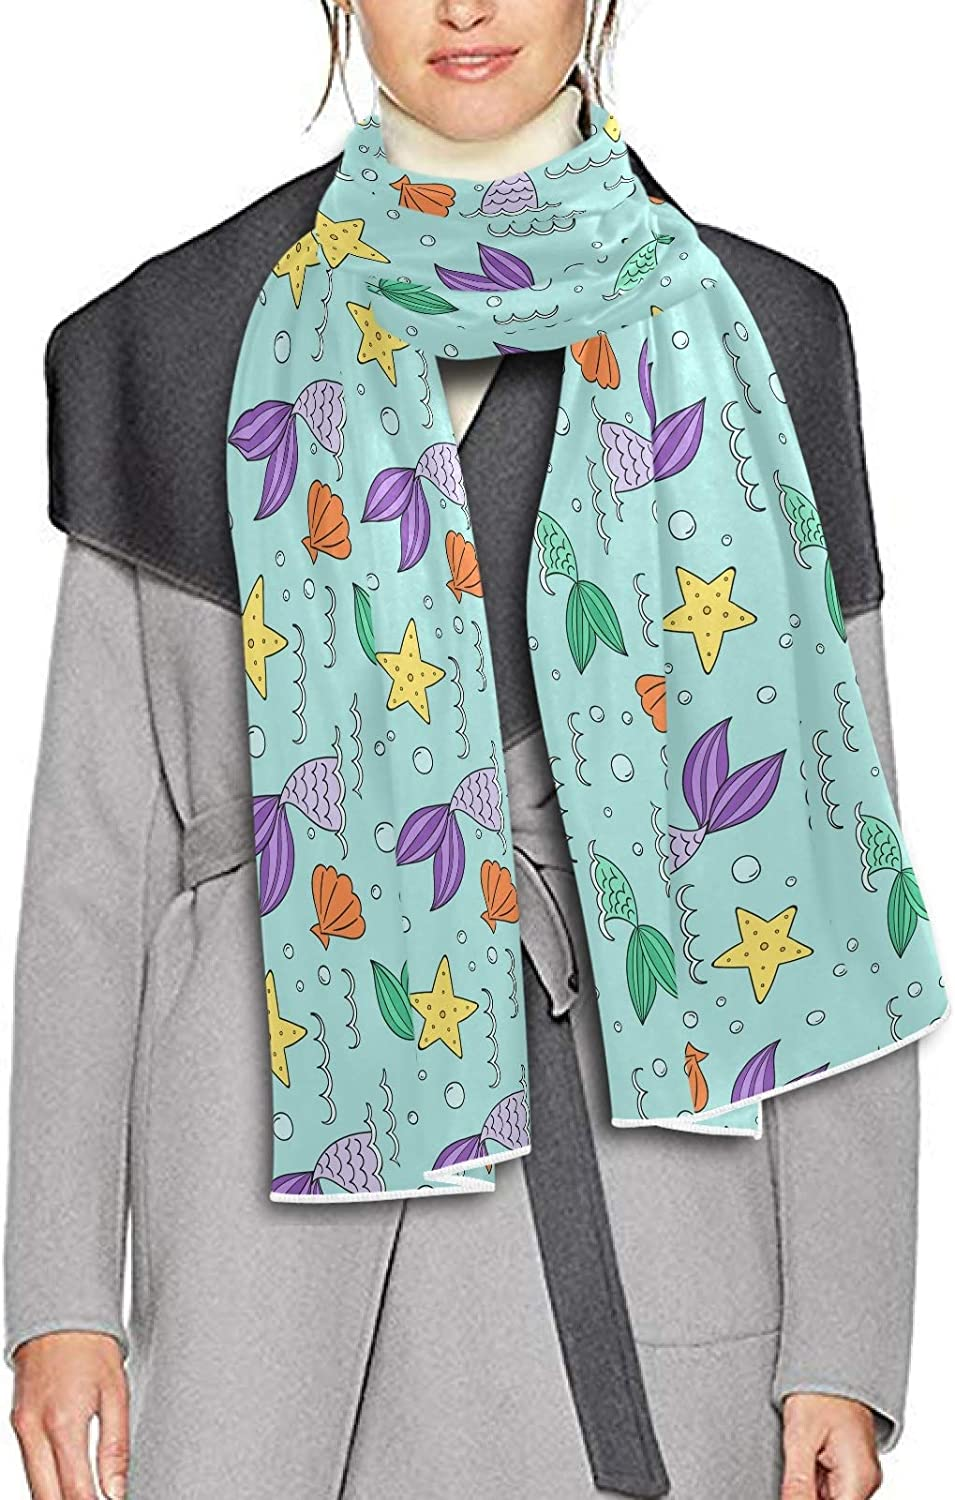 Scarf for Women and Men Mermaid Stars Fish Shawl Wraps Blanket Scarf Soft warm Winter Oversized Scarves Lightweight